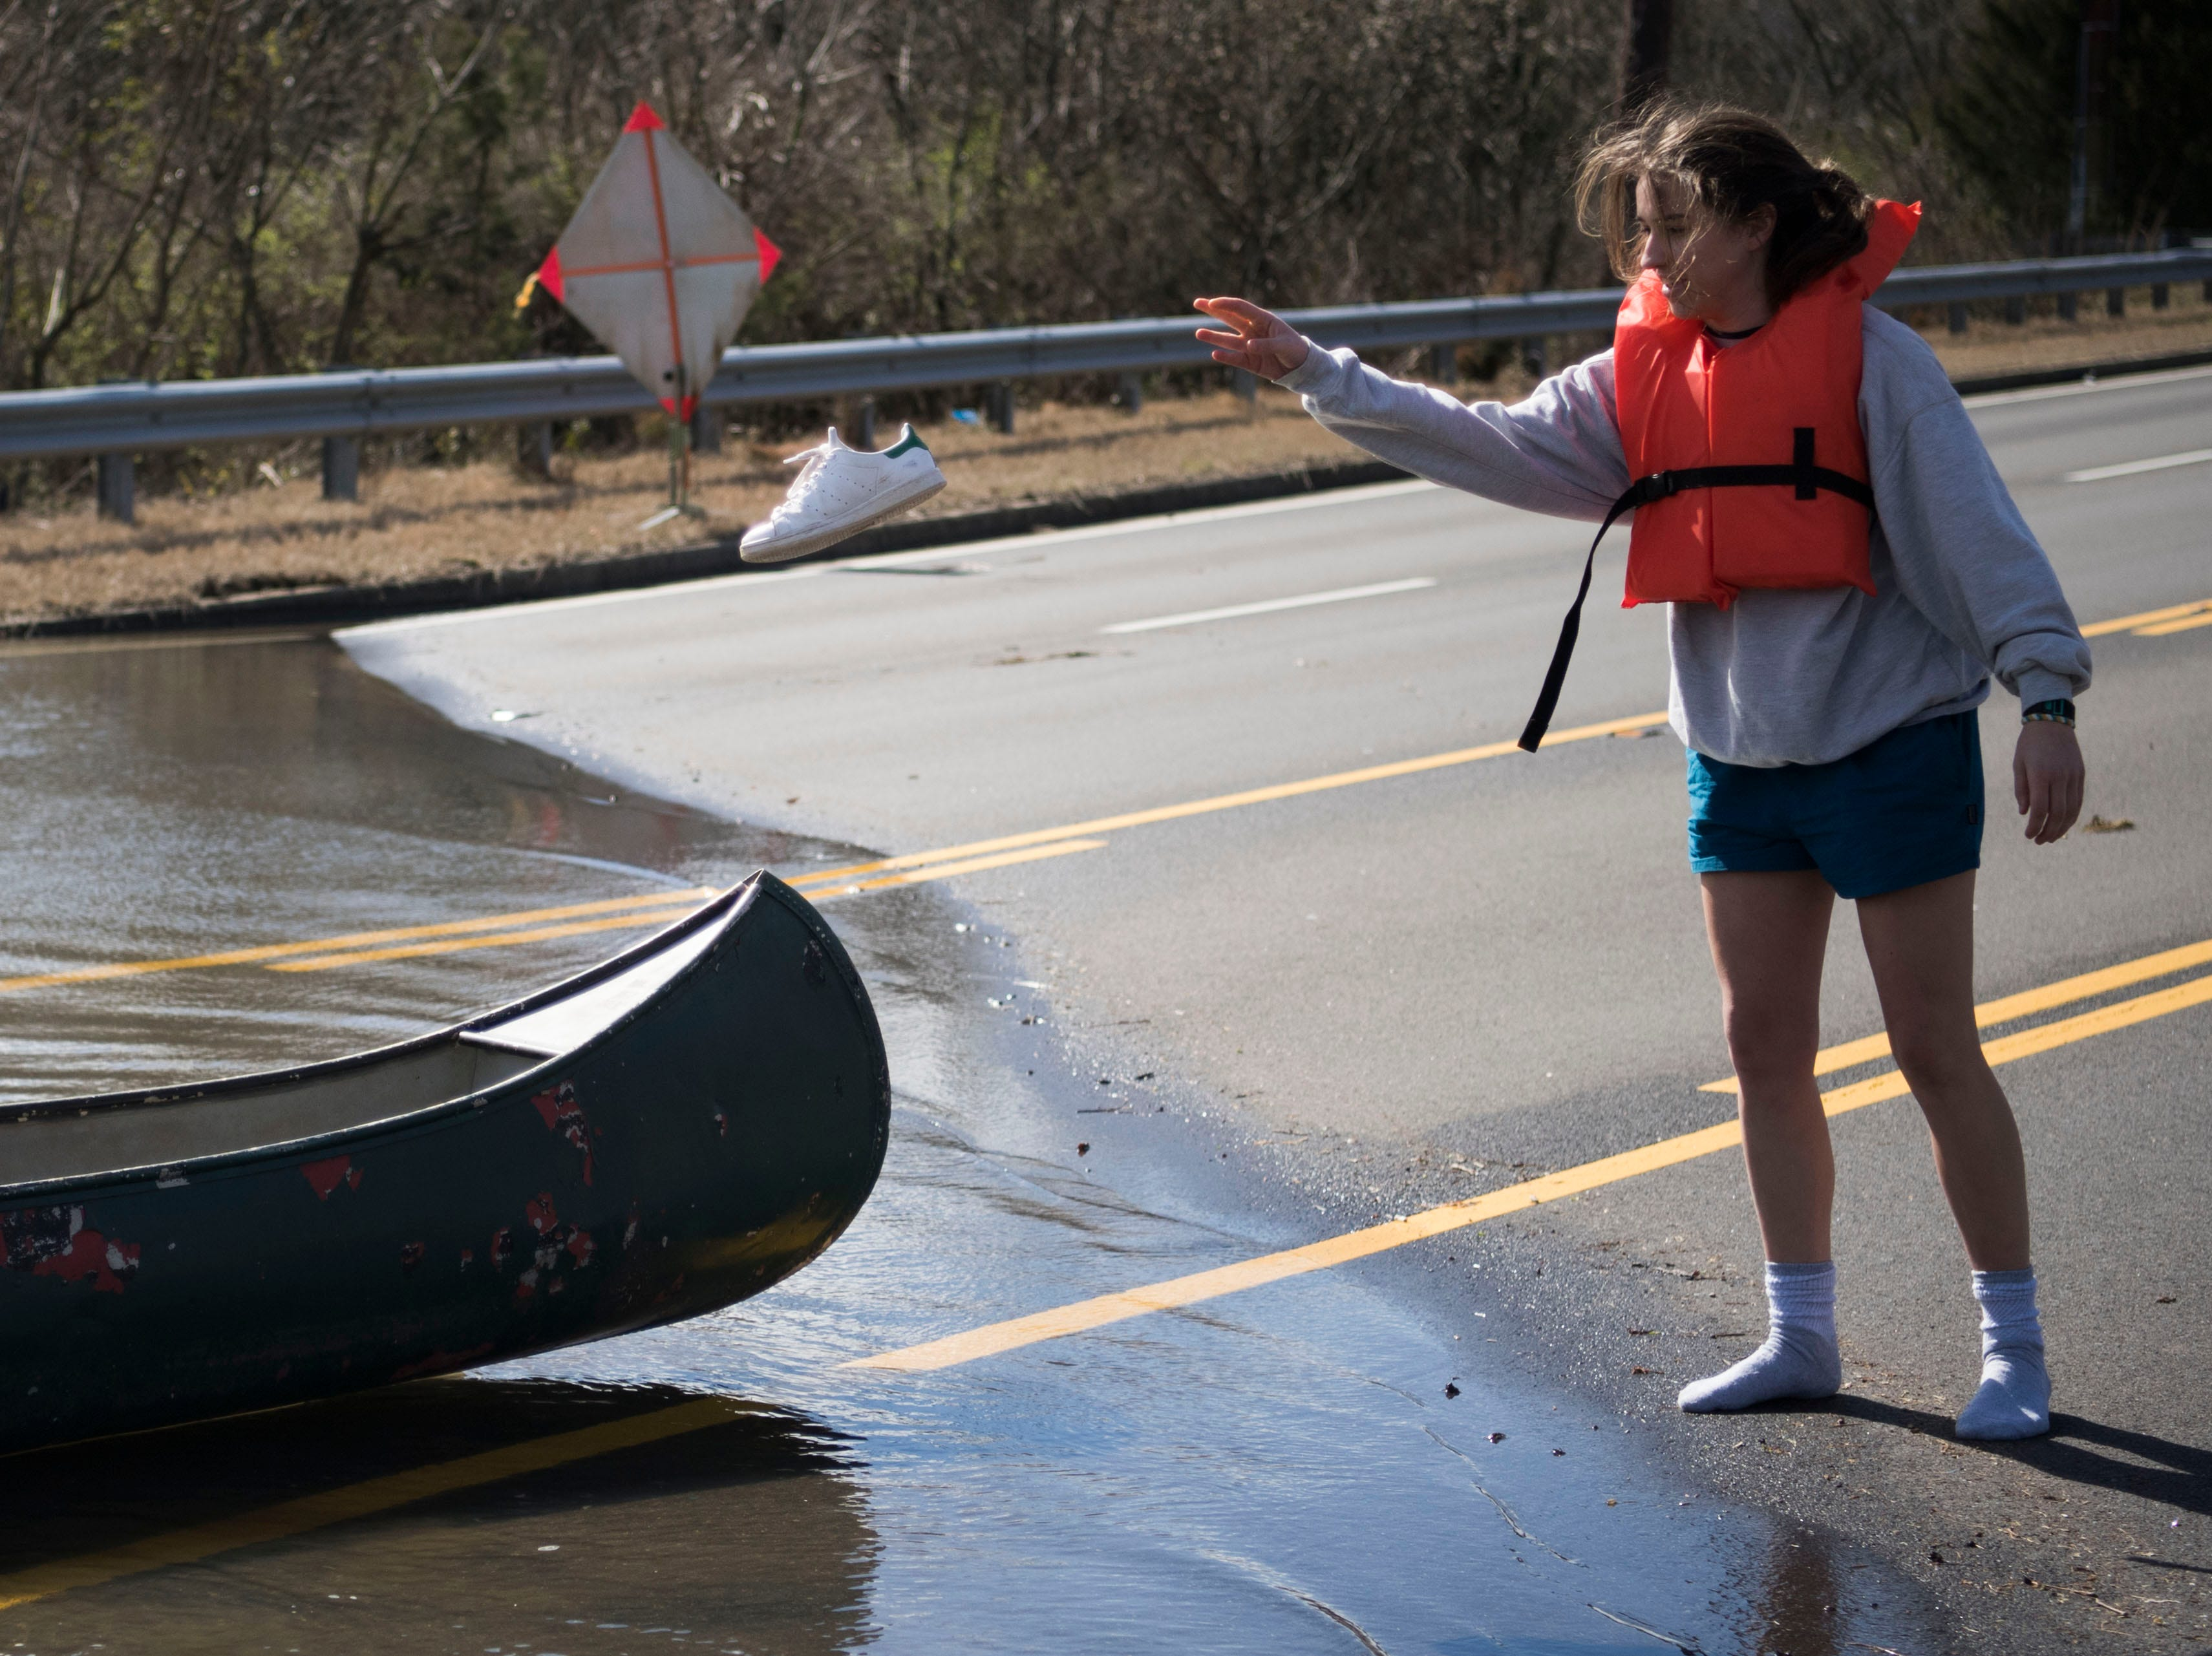 Julia Bryant, 18, of Knoxville, throws her shoes into the boat before canoeing to her home which was surrounded by flood waters off Lantair Farm Lane, in Southwest Knox County Sunday, Feb. 24, 2019.